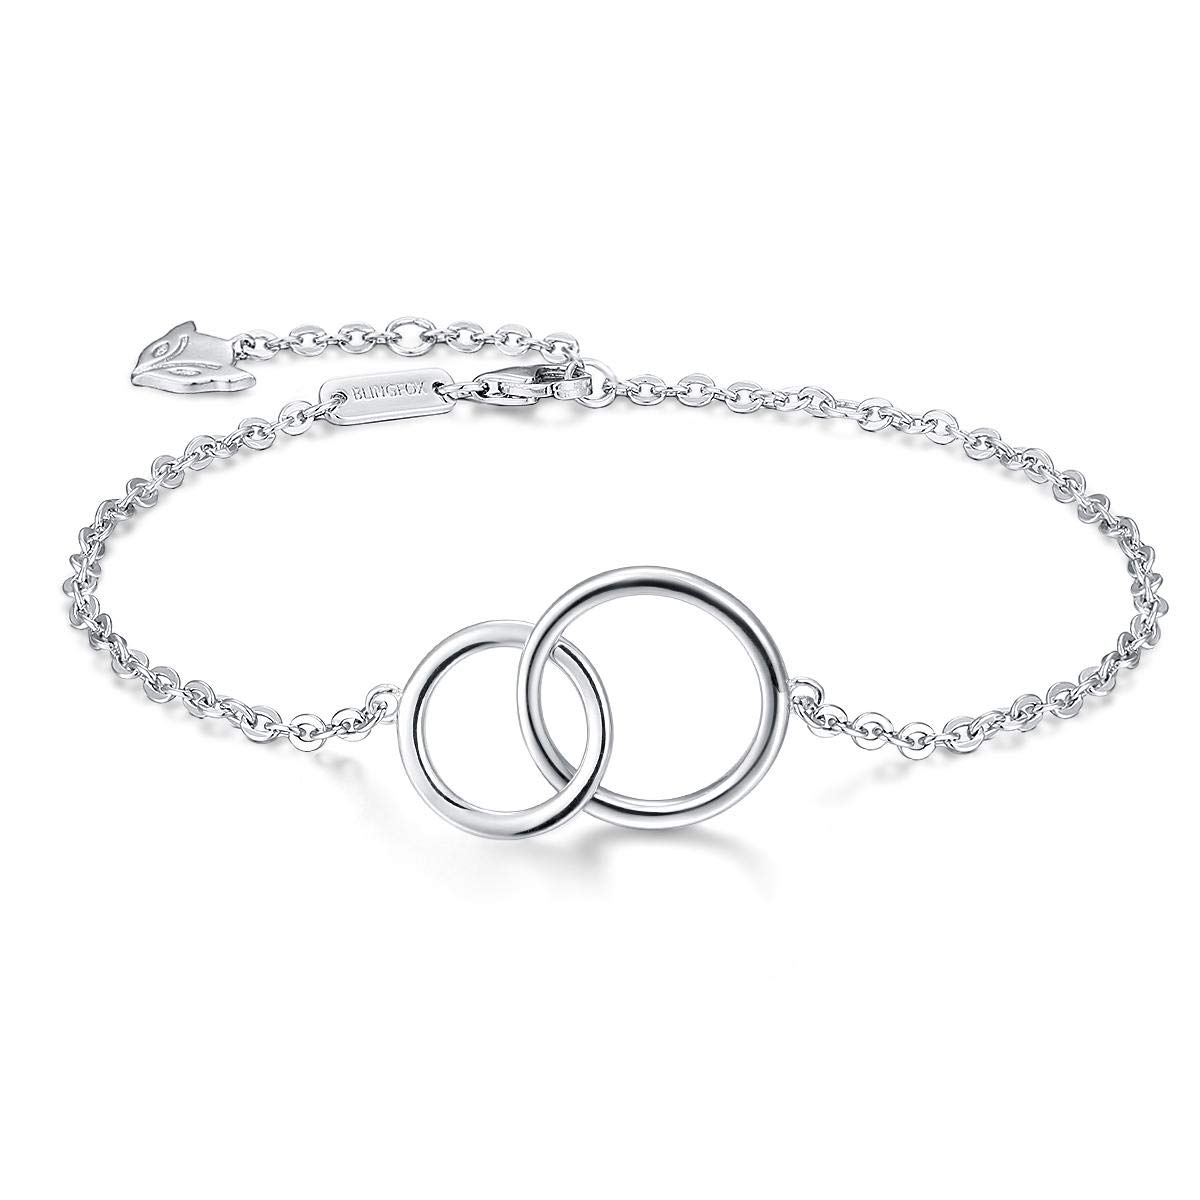 Blingfox 925 Sterling Silver Two Interlocking Infinity Circles Bracelet for Sister Friend Mother